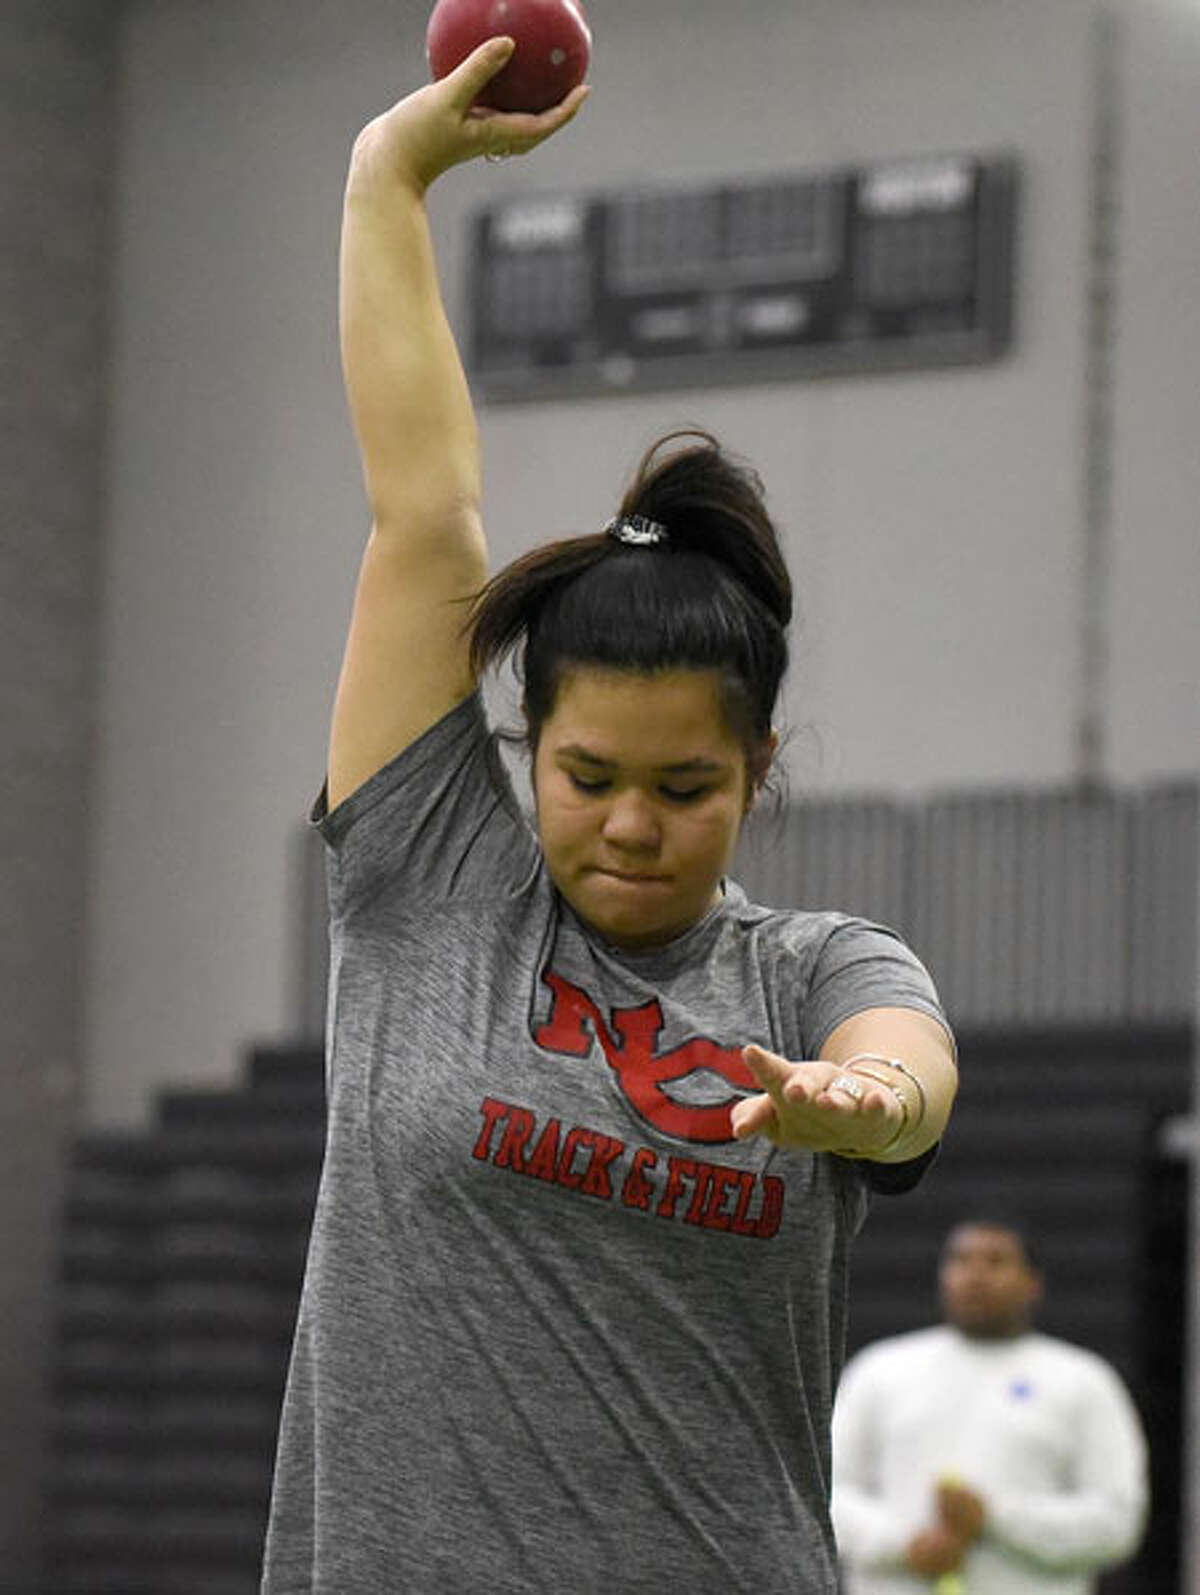 New Canaan junior Naomi Cimino gets ready for a throw during the girls shot put competition at the FCIAC indoor track and field championships in New Haven on Thursday, Jan. 31. - Dave Stewart/Hearst Connecticut Media photo